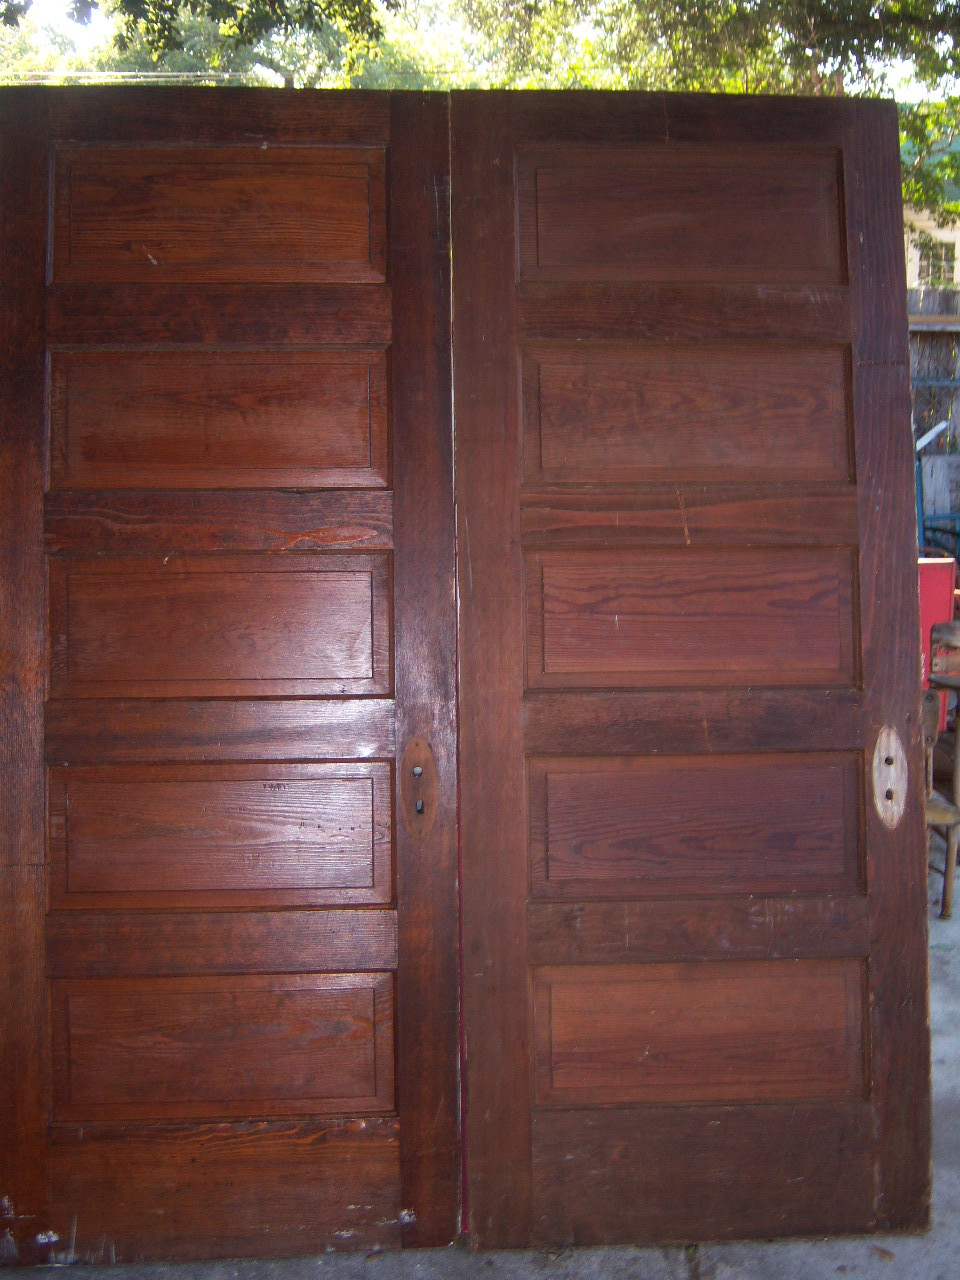 5 Raised Wood Panel Antique Doors In Good Condition ...